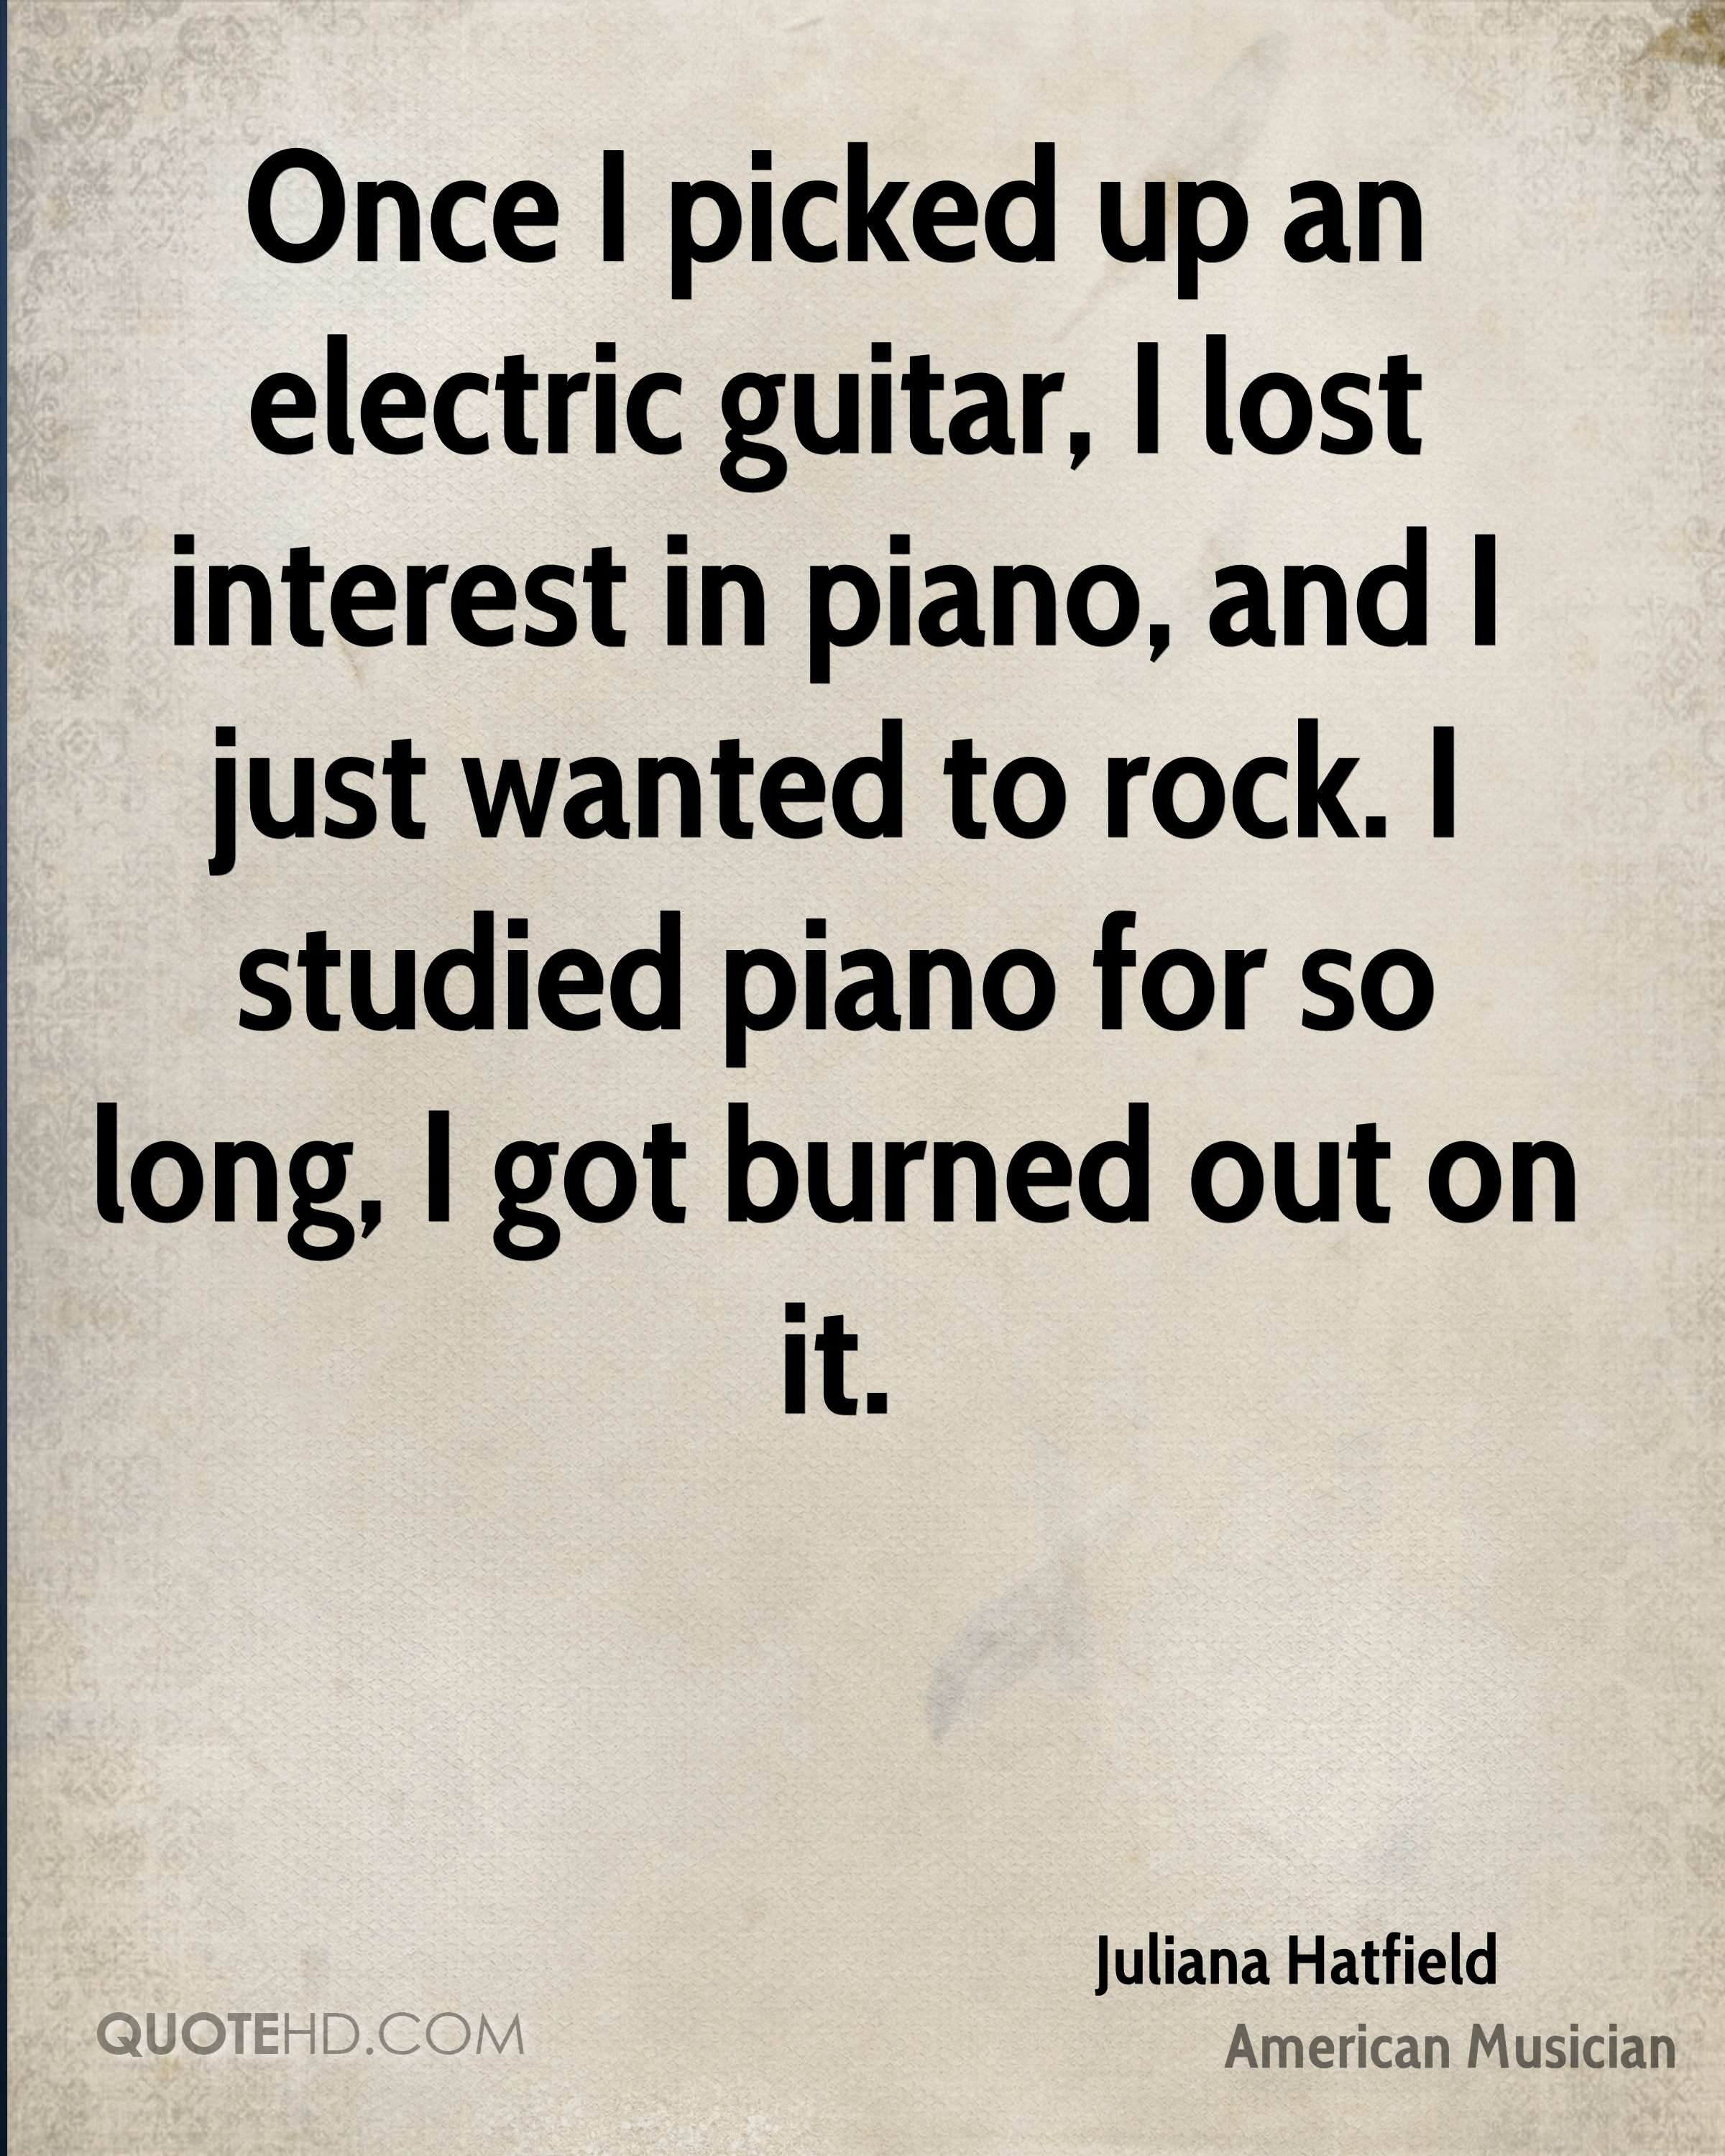 Once I picked up an electric guitar, I lost interest in piano, and I just wanted to rock. I studied piano for so long, I got burned out on it.